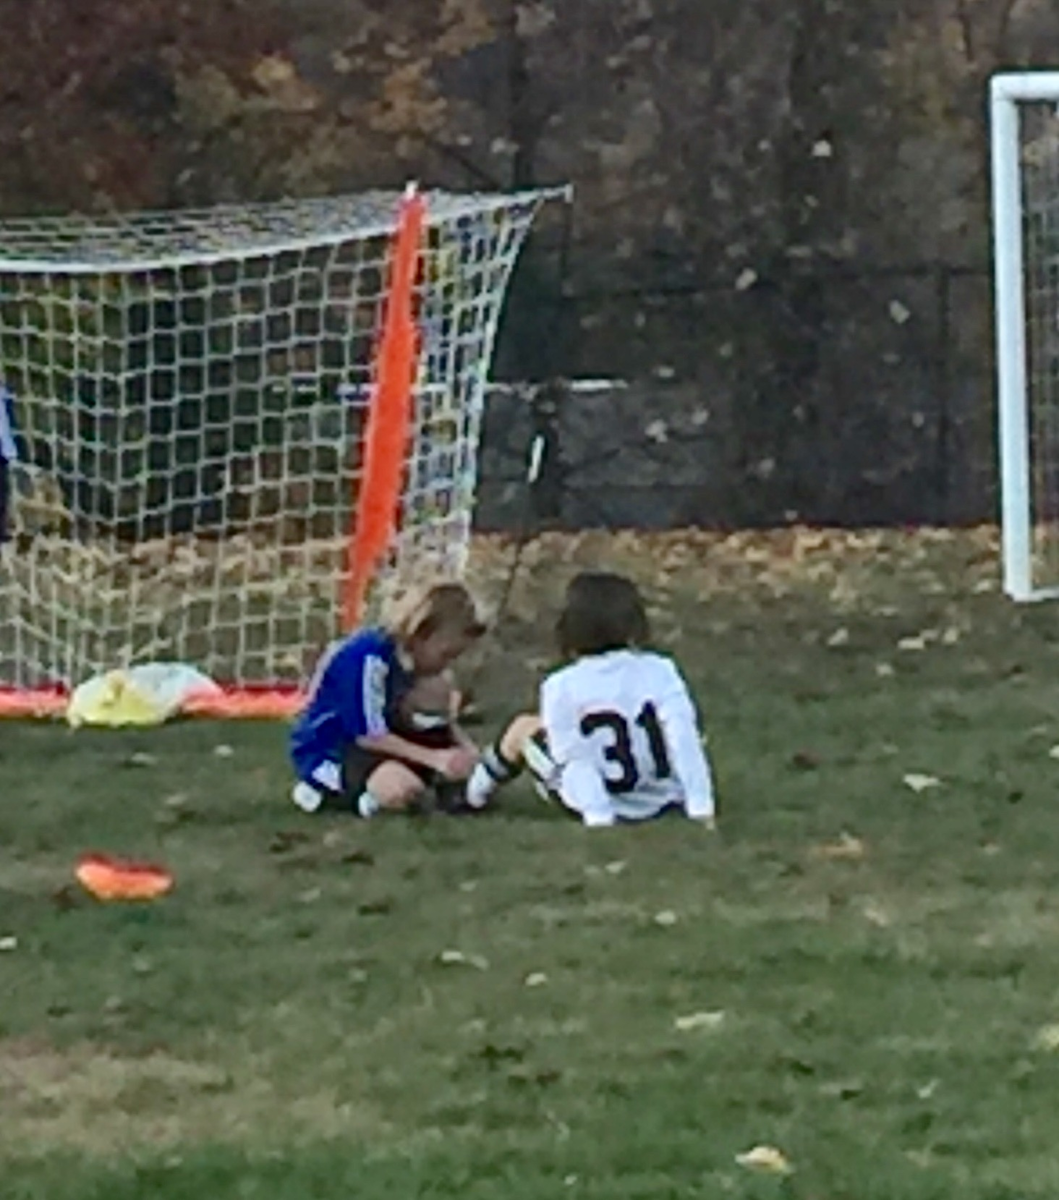 My Kid's Surprising Soccer Move—and Why It Made Me Proud